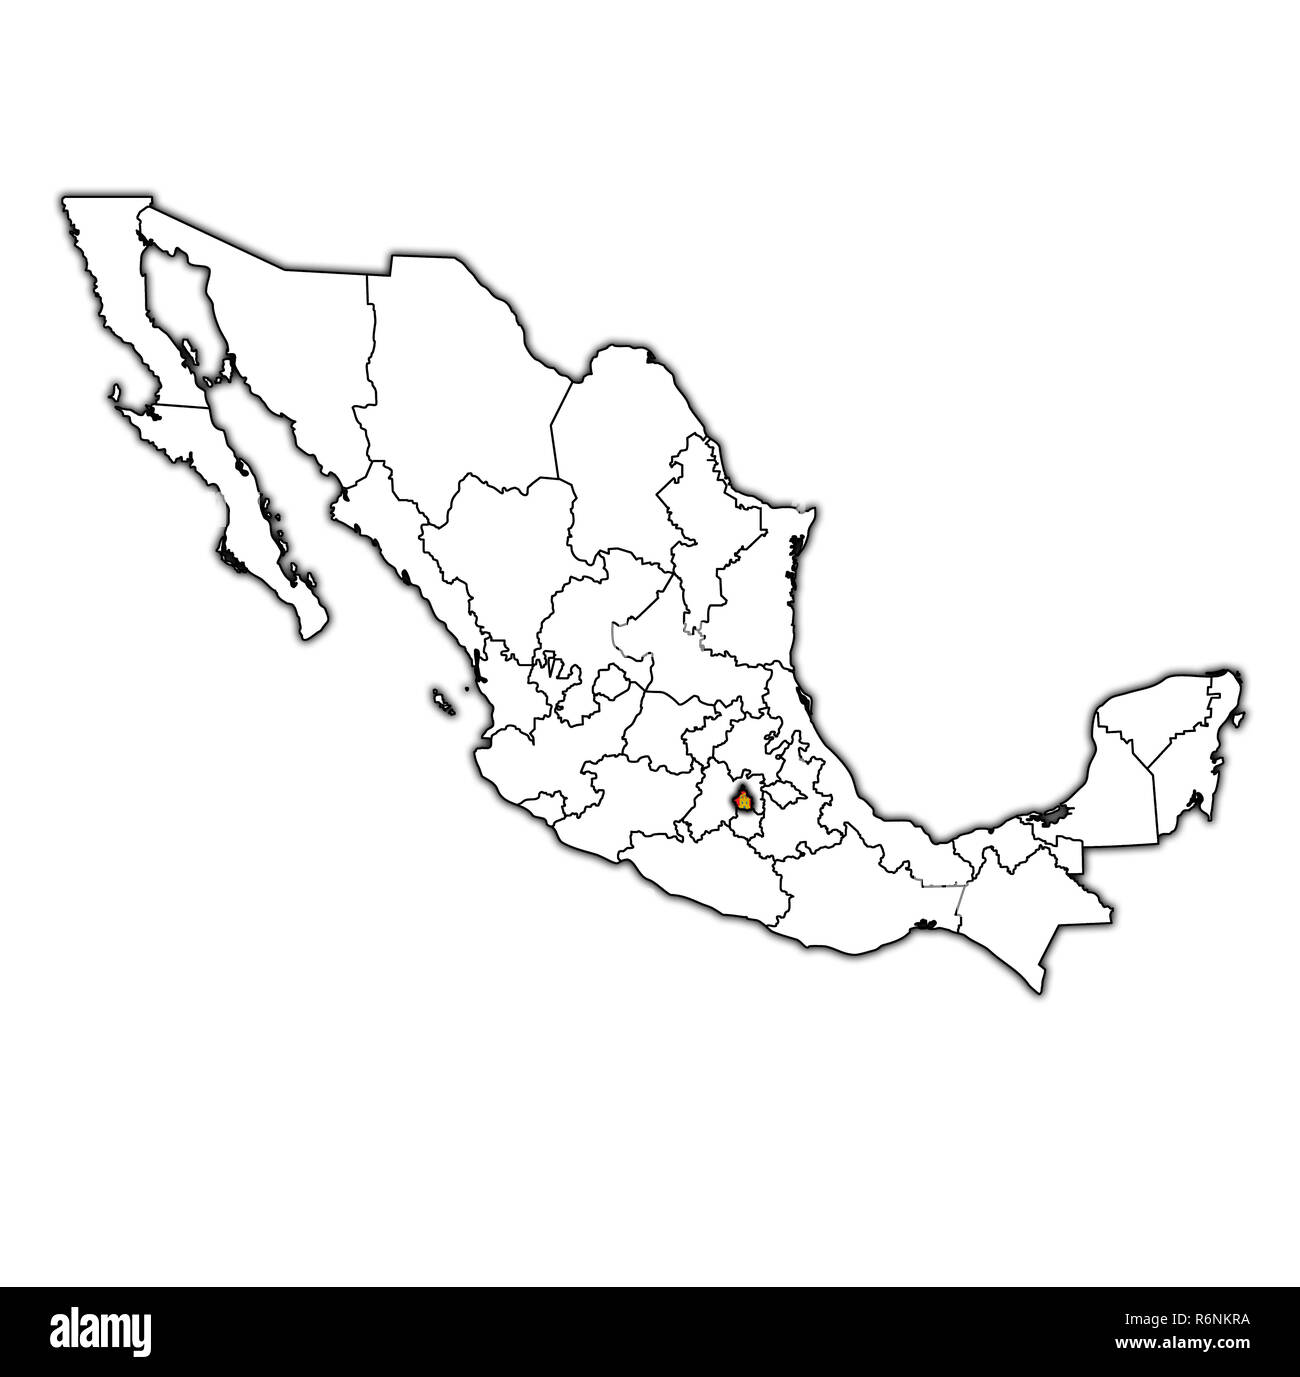 Tlaxcala On Administration Map Of Mexico Stock Photo 227899262 Alamy